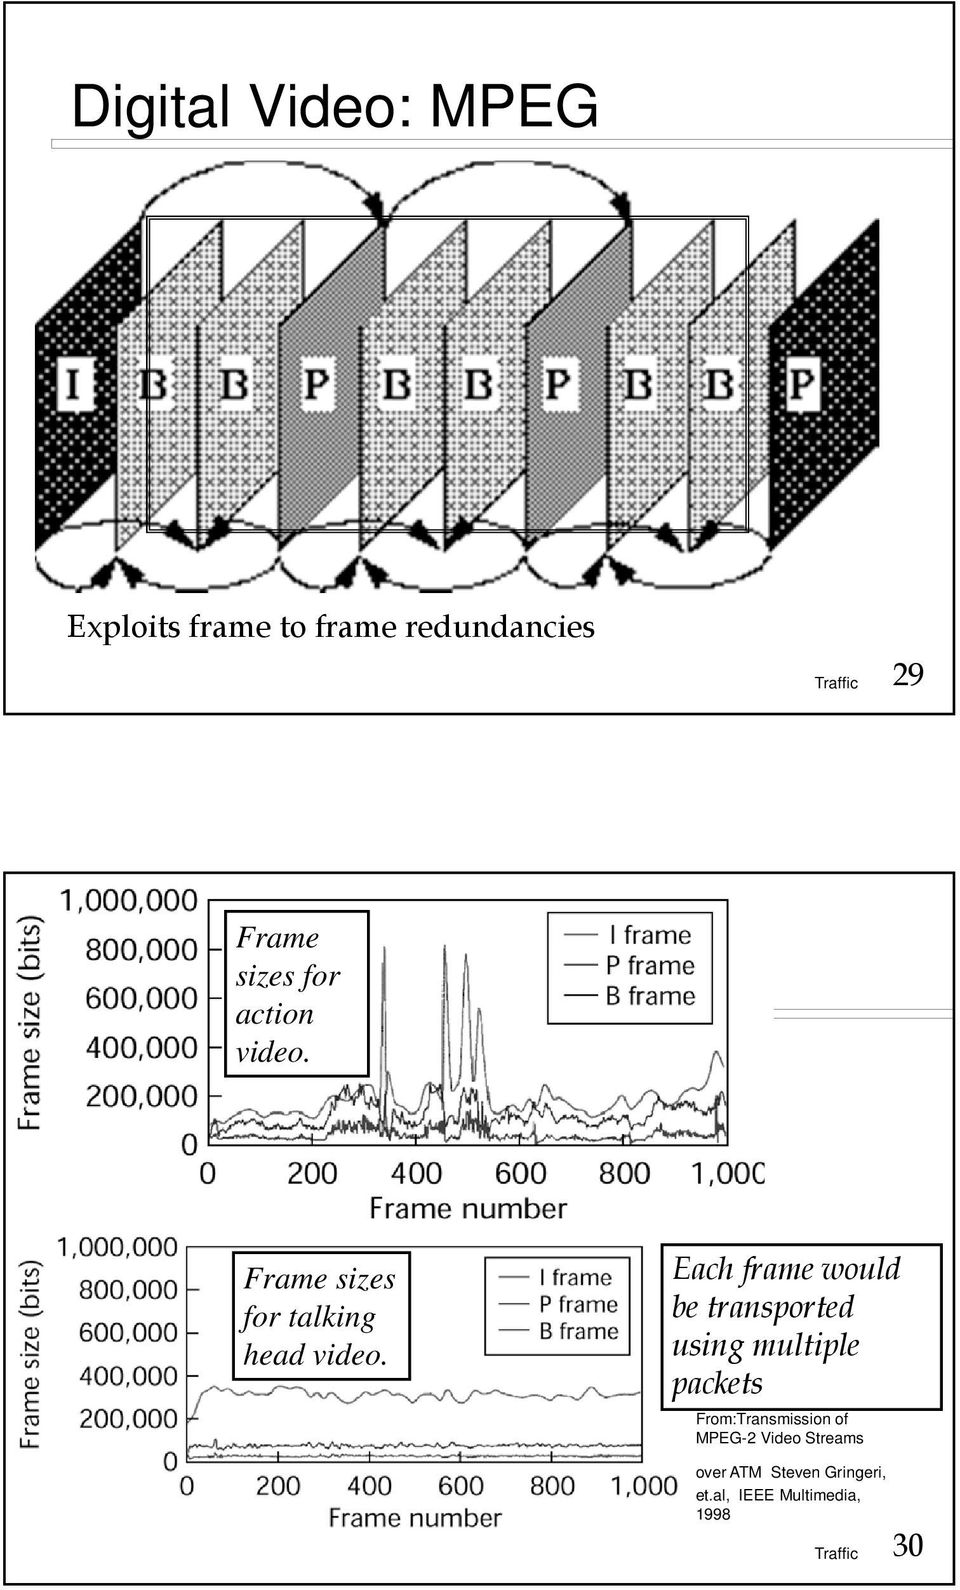 Each frame would be transported using multiple packets